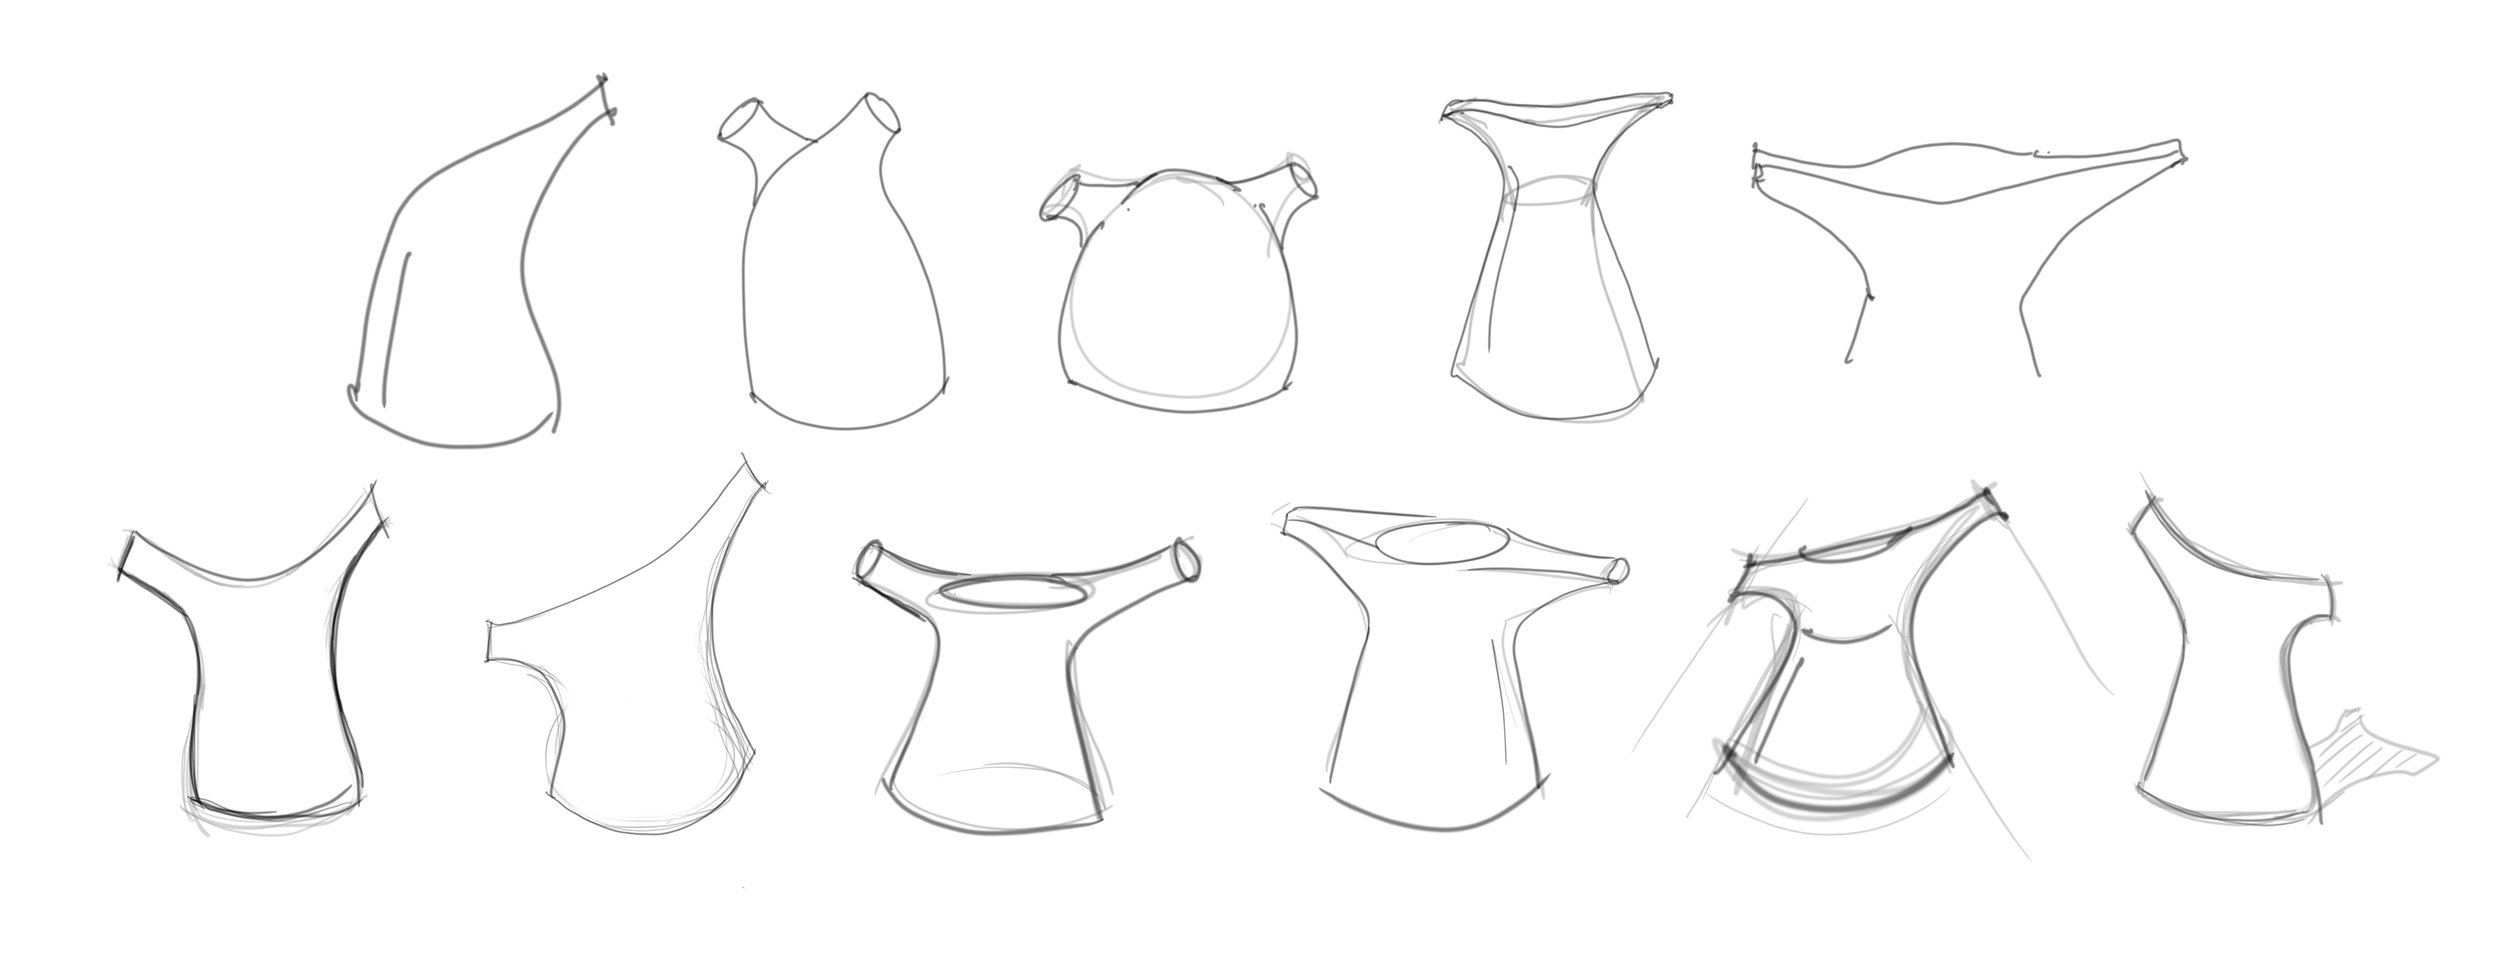 Pouring Vessel Sketches.jpg